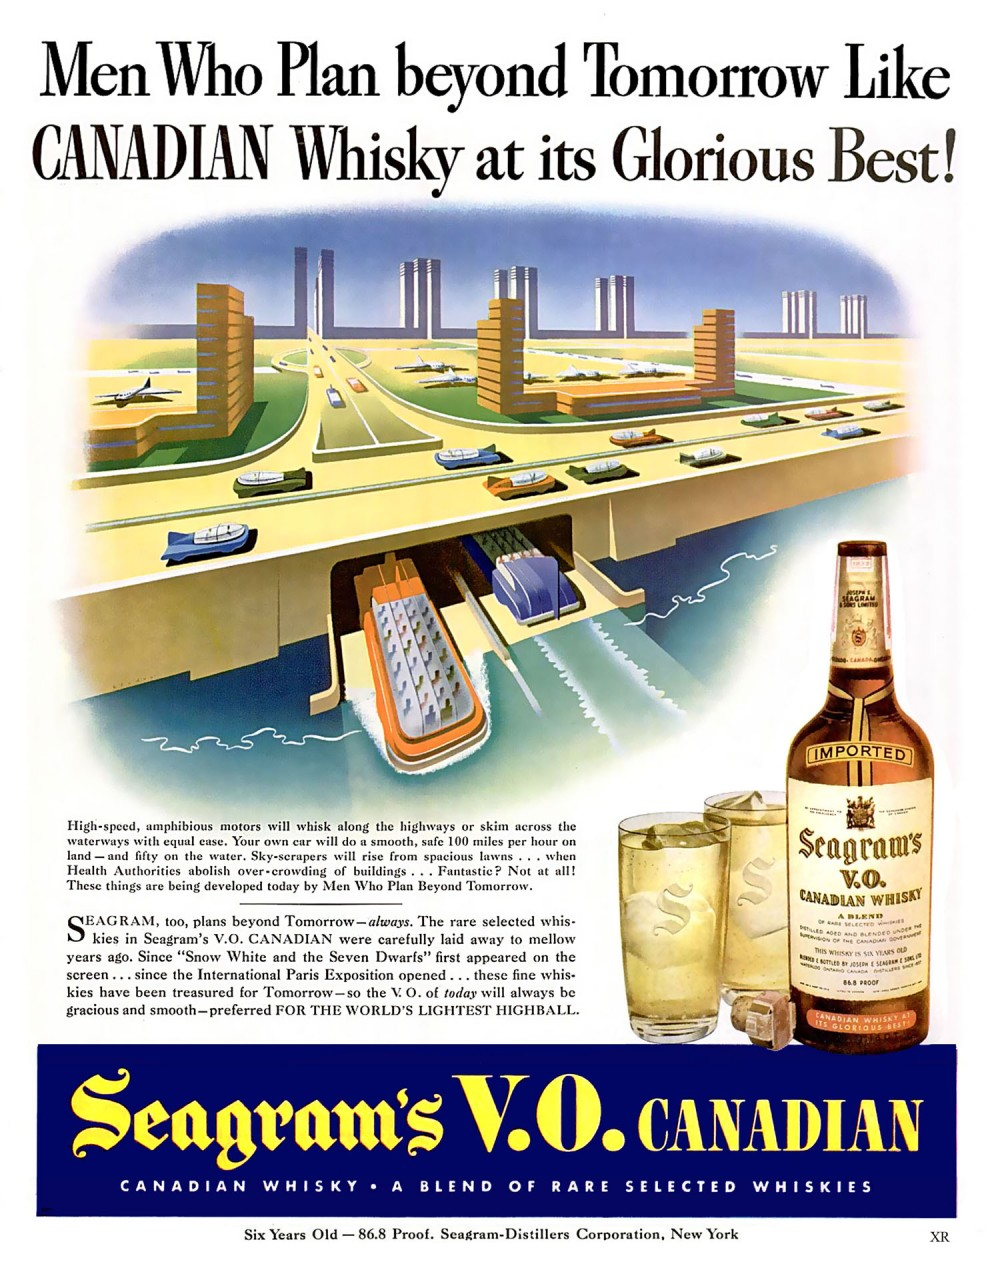 1943 - MWPBT Like Canadian Whiskey at its Glorious Best